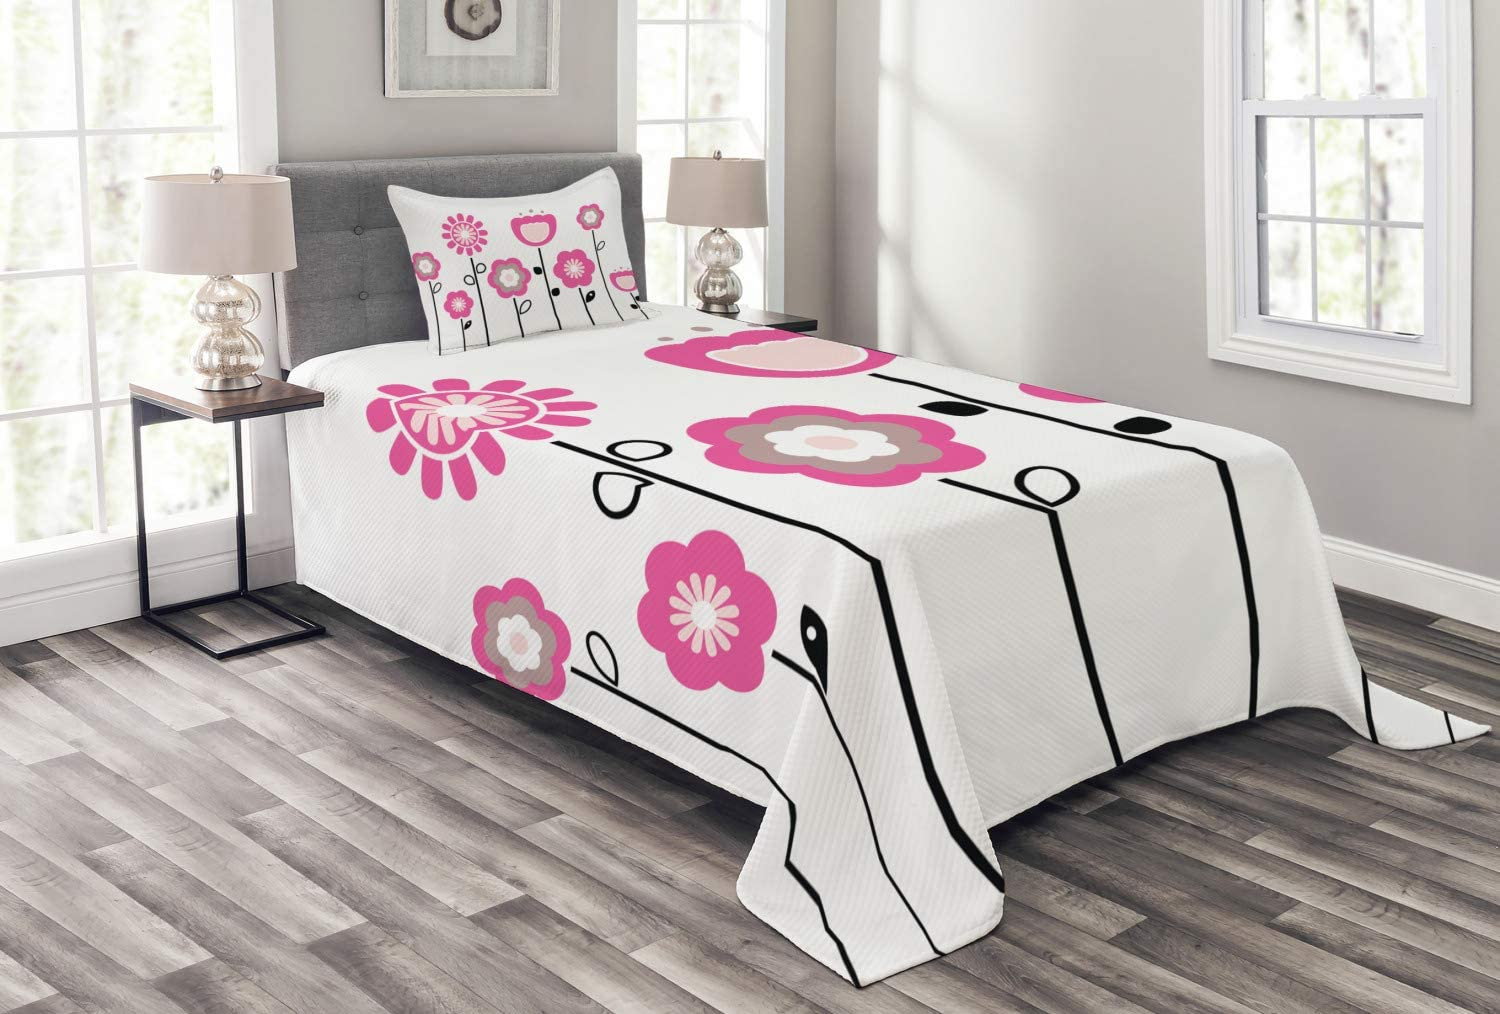 Ambesonne Pink and White Bedspread Topics on TV Abstract Flowers Rural Fi Industry No. 1 on